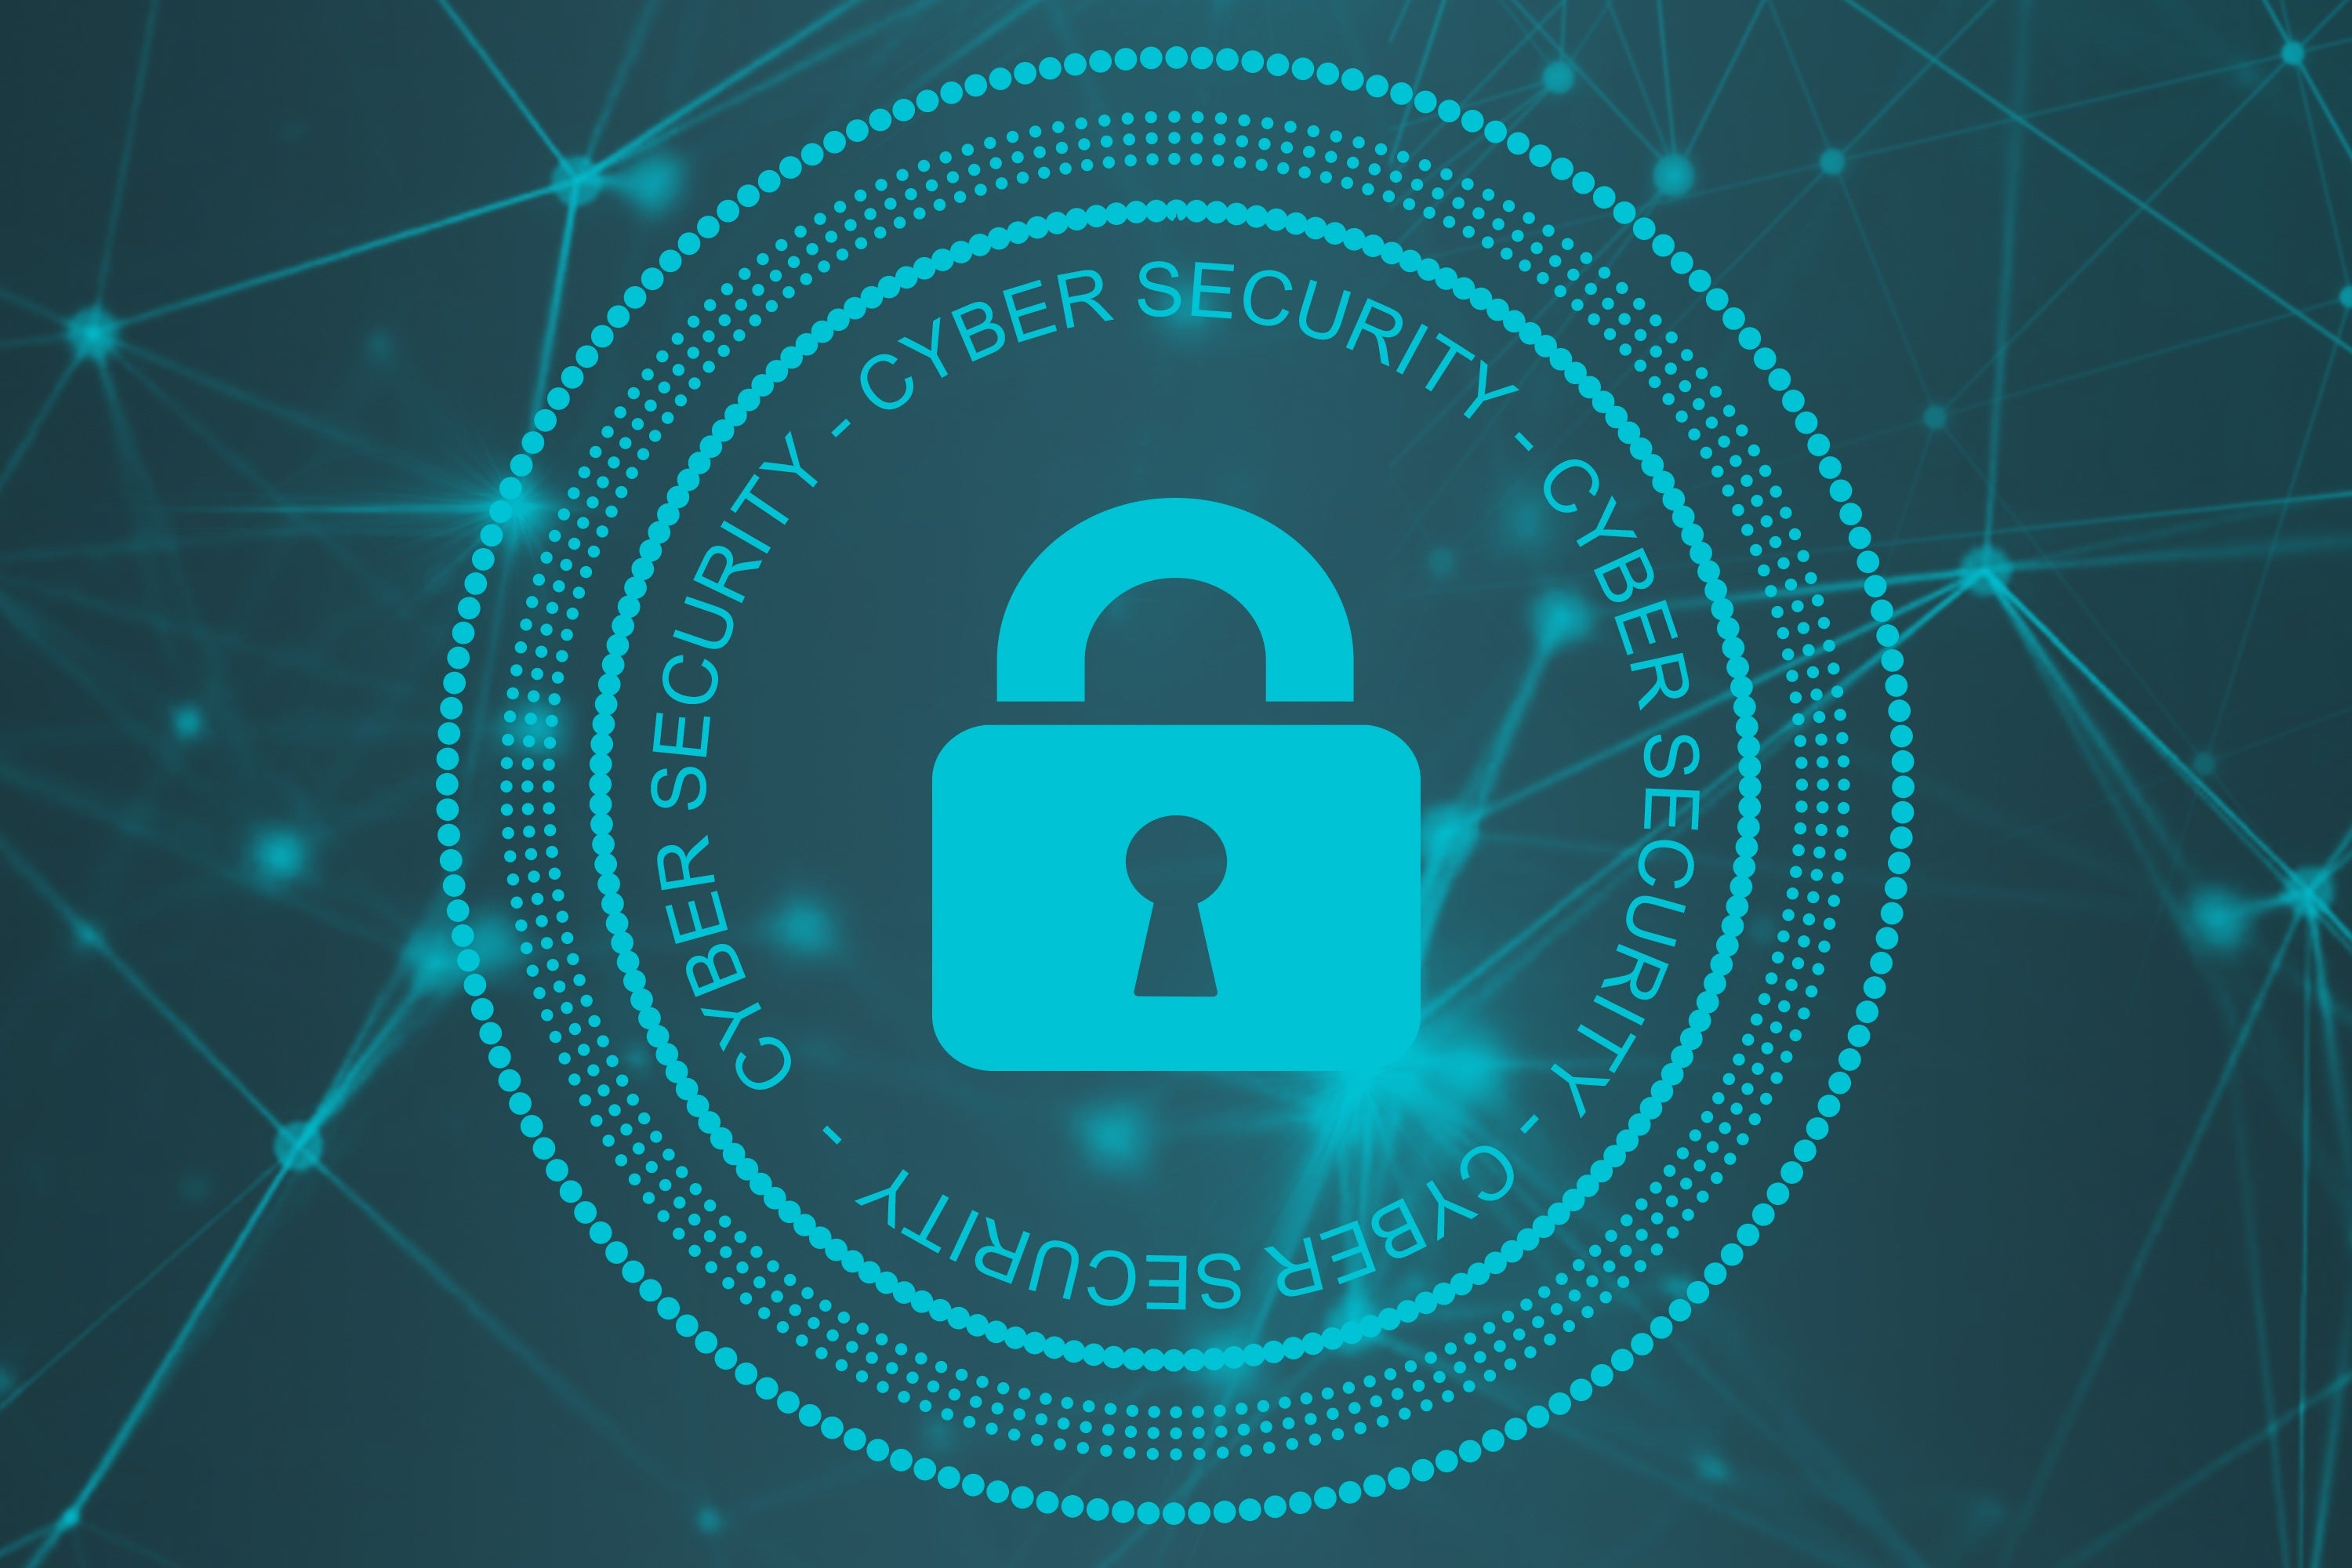 COVID-19 identified who was essential but cyber security will determine who is critical